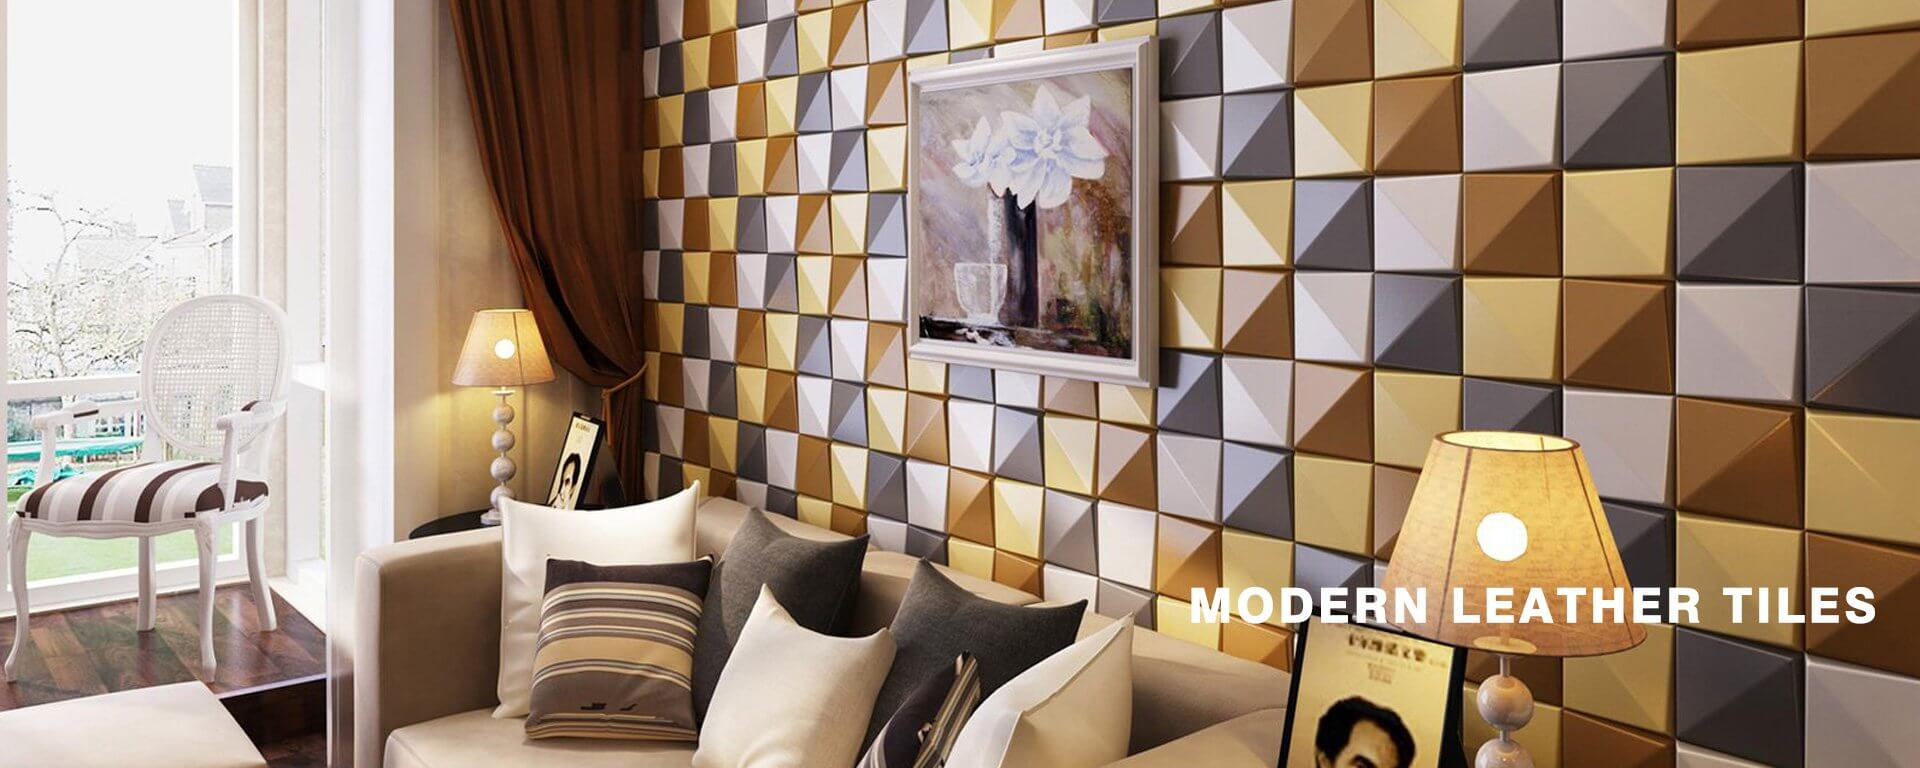 Modern Leather Tiles